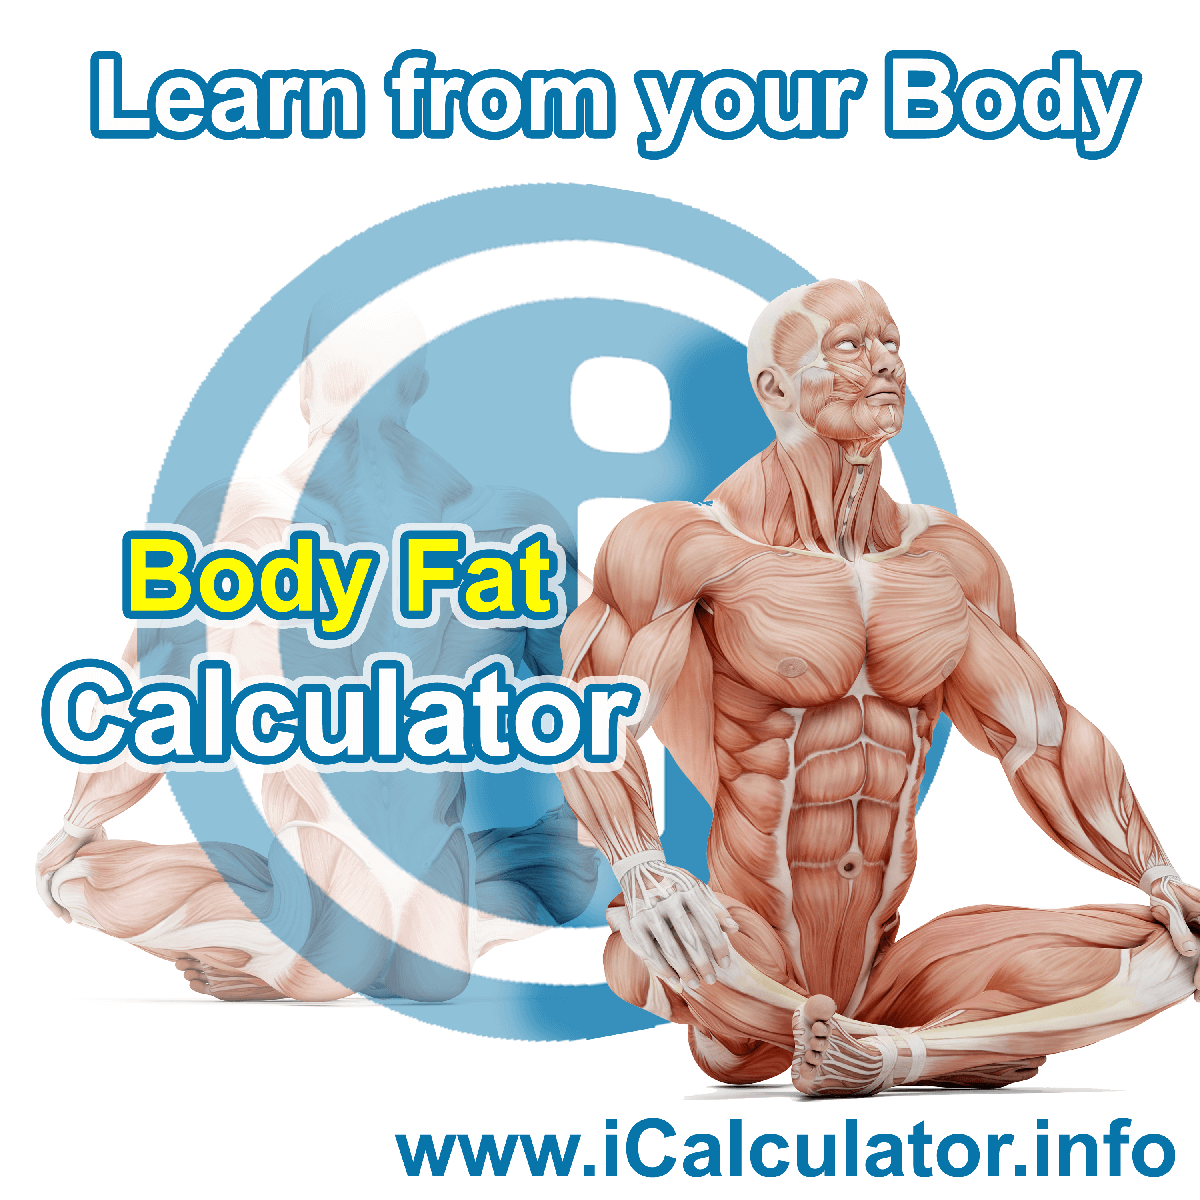 Body Fat Calculator. This image shows the Body Fat formula for the Body Fat Calculator